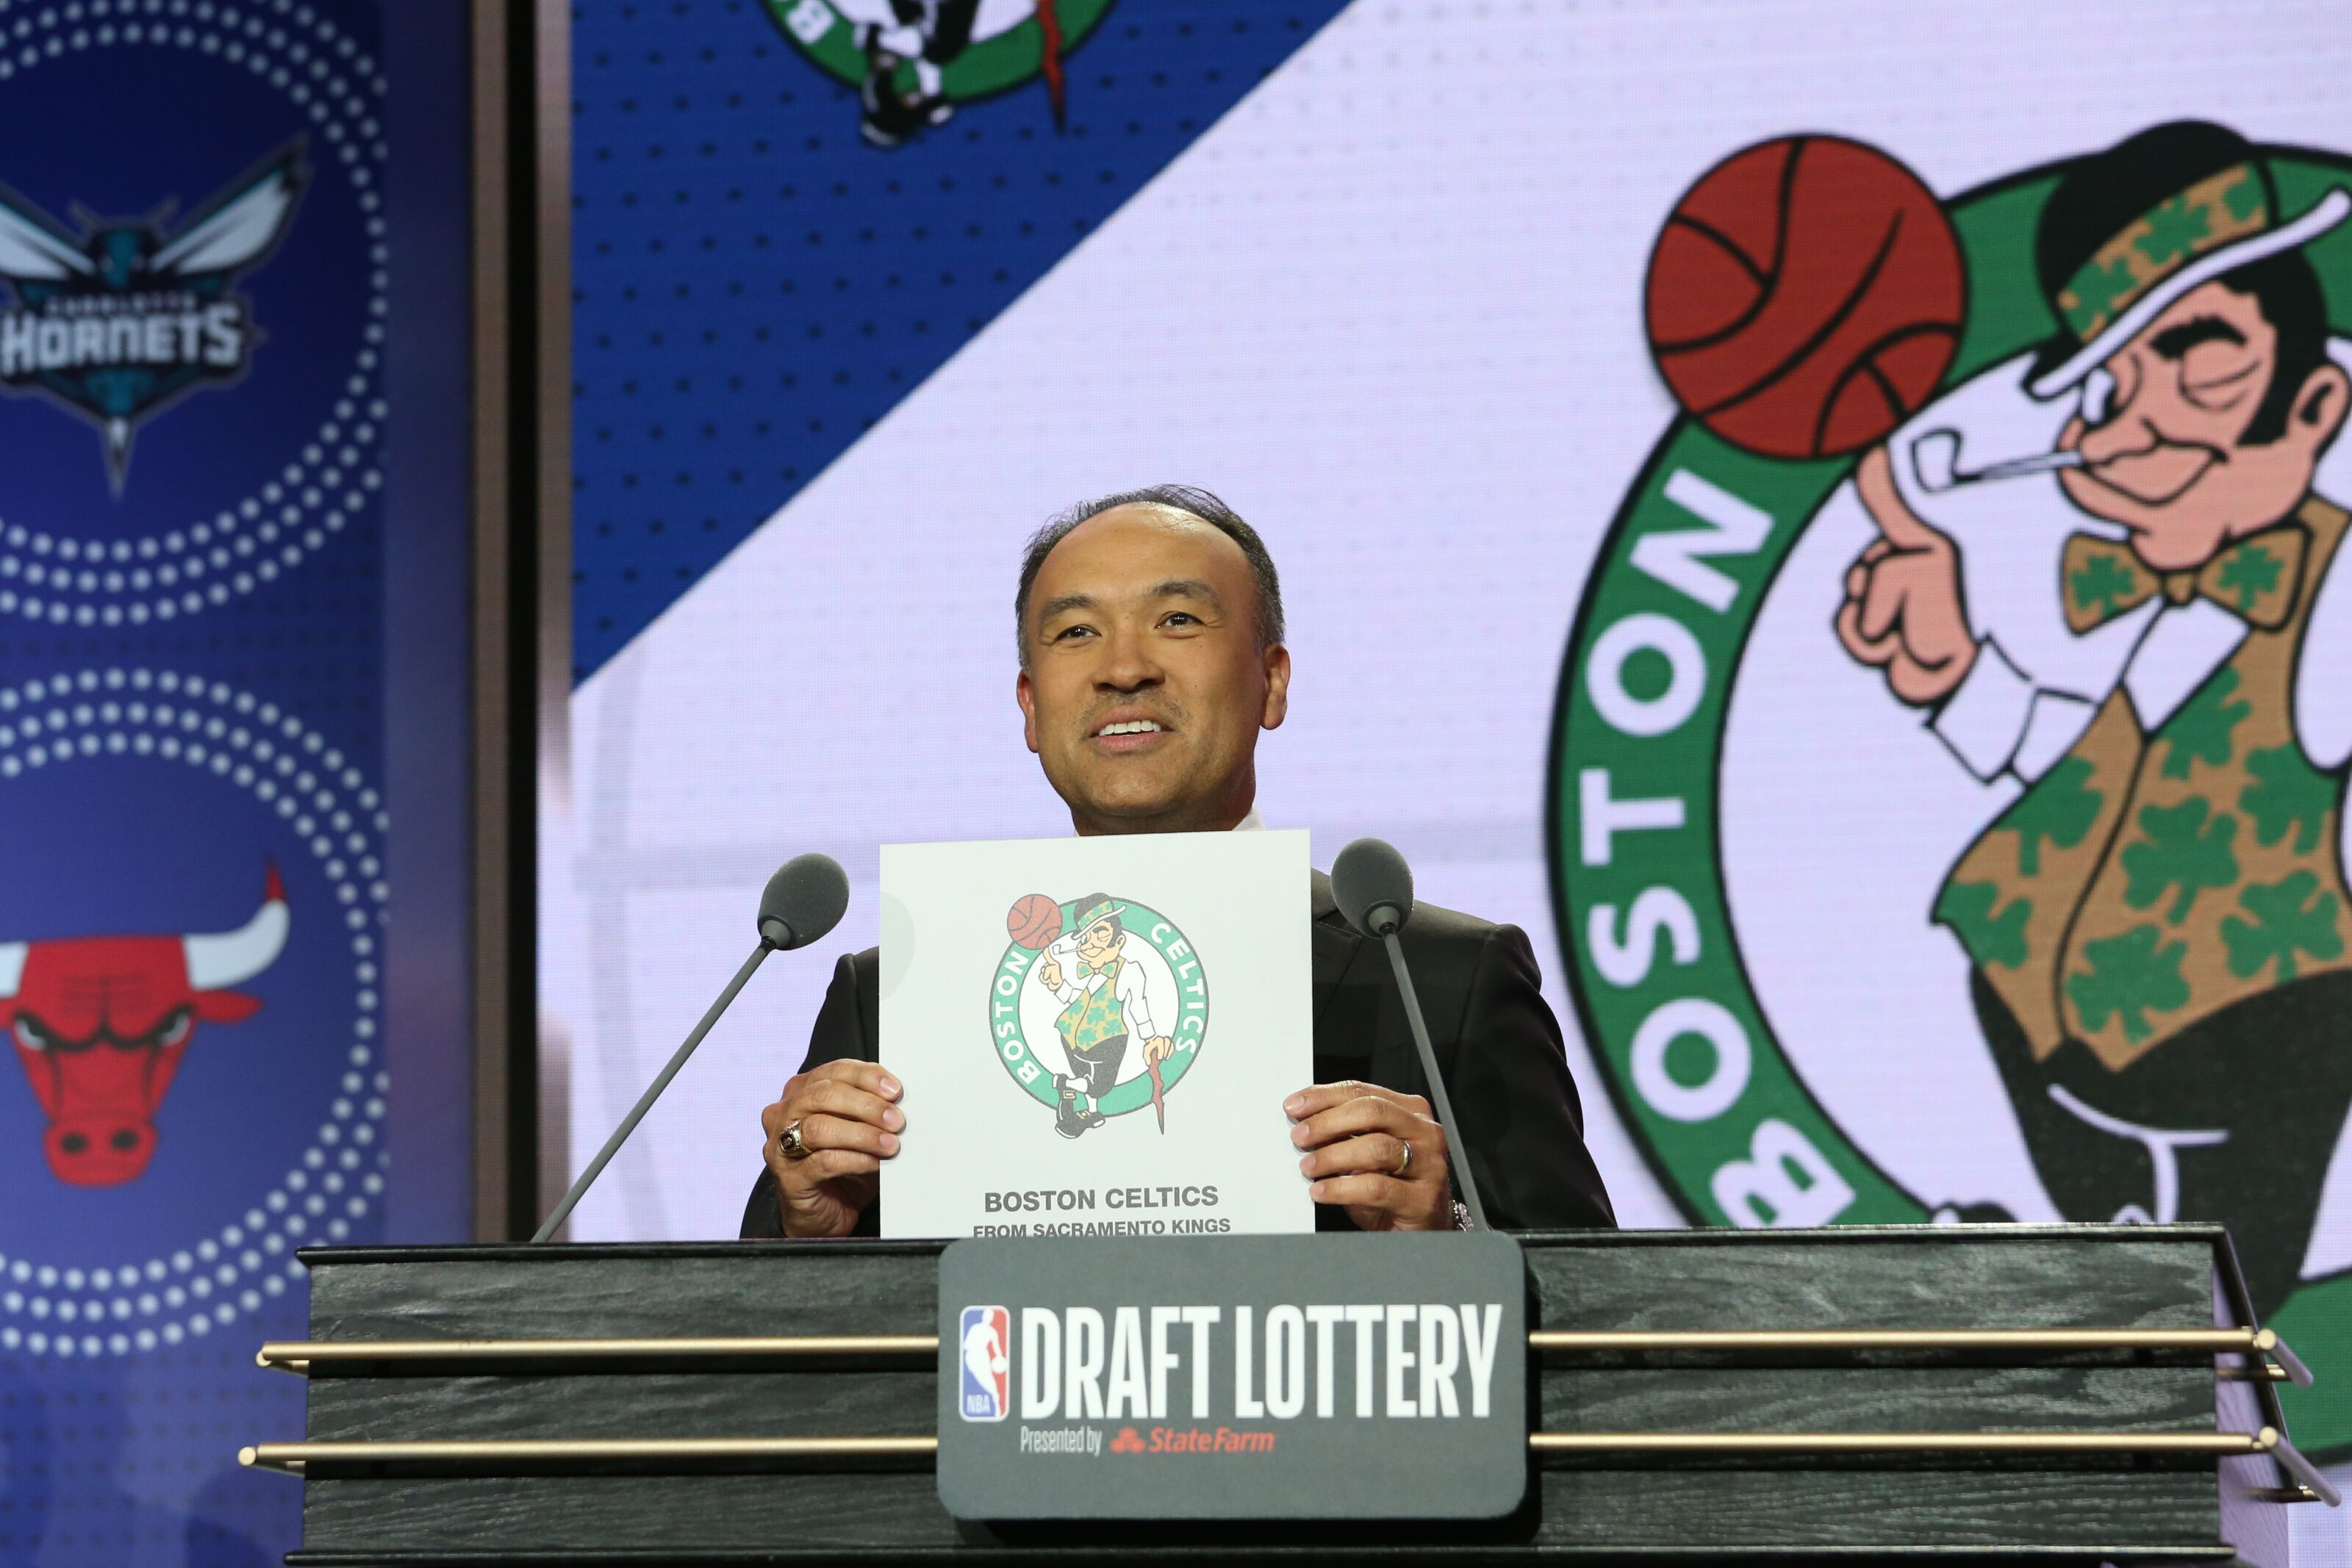 Boston Celtics: franchise should do all they can to acquire the No. 4 pick